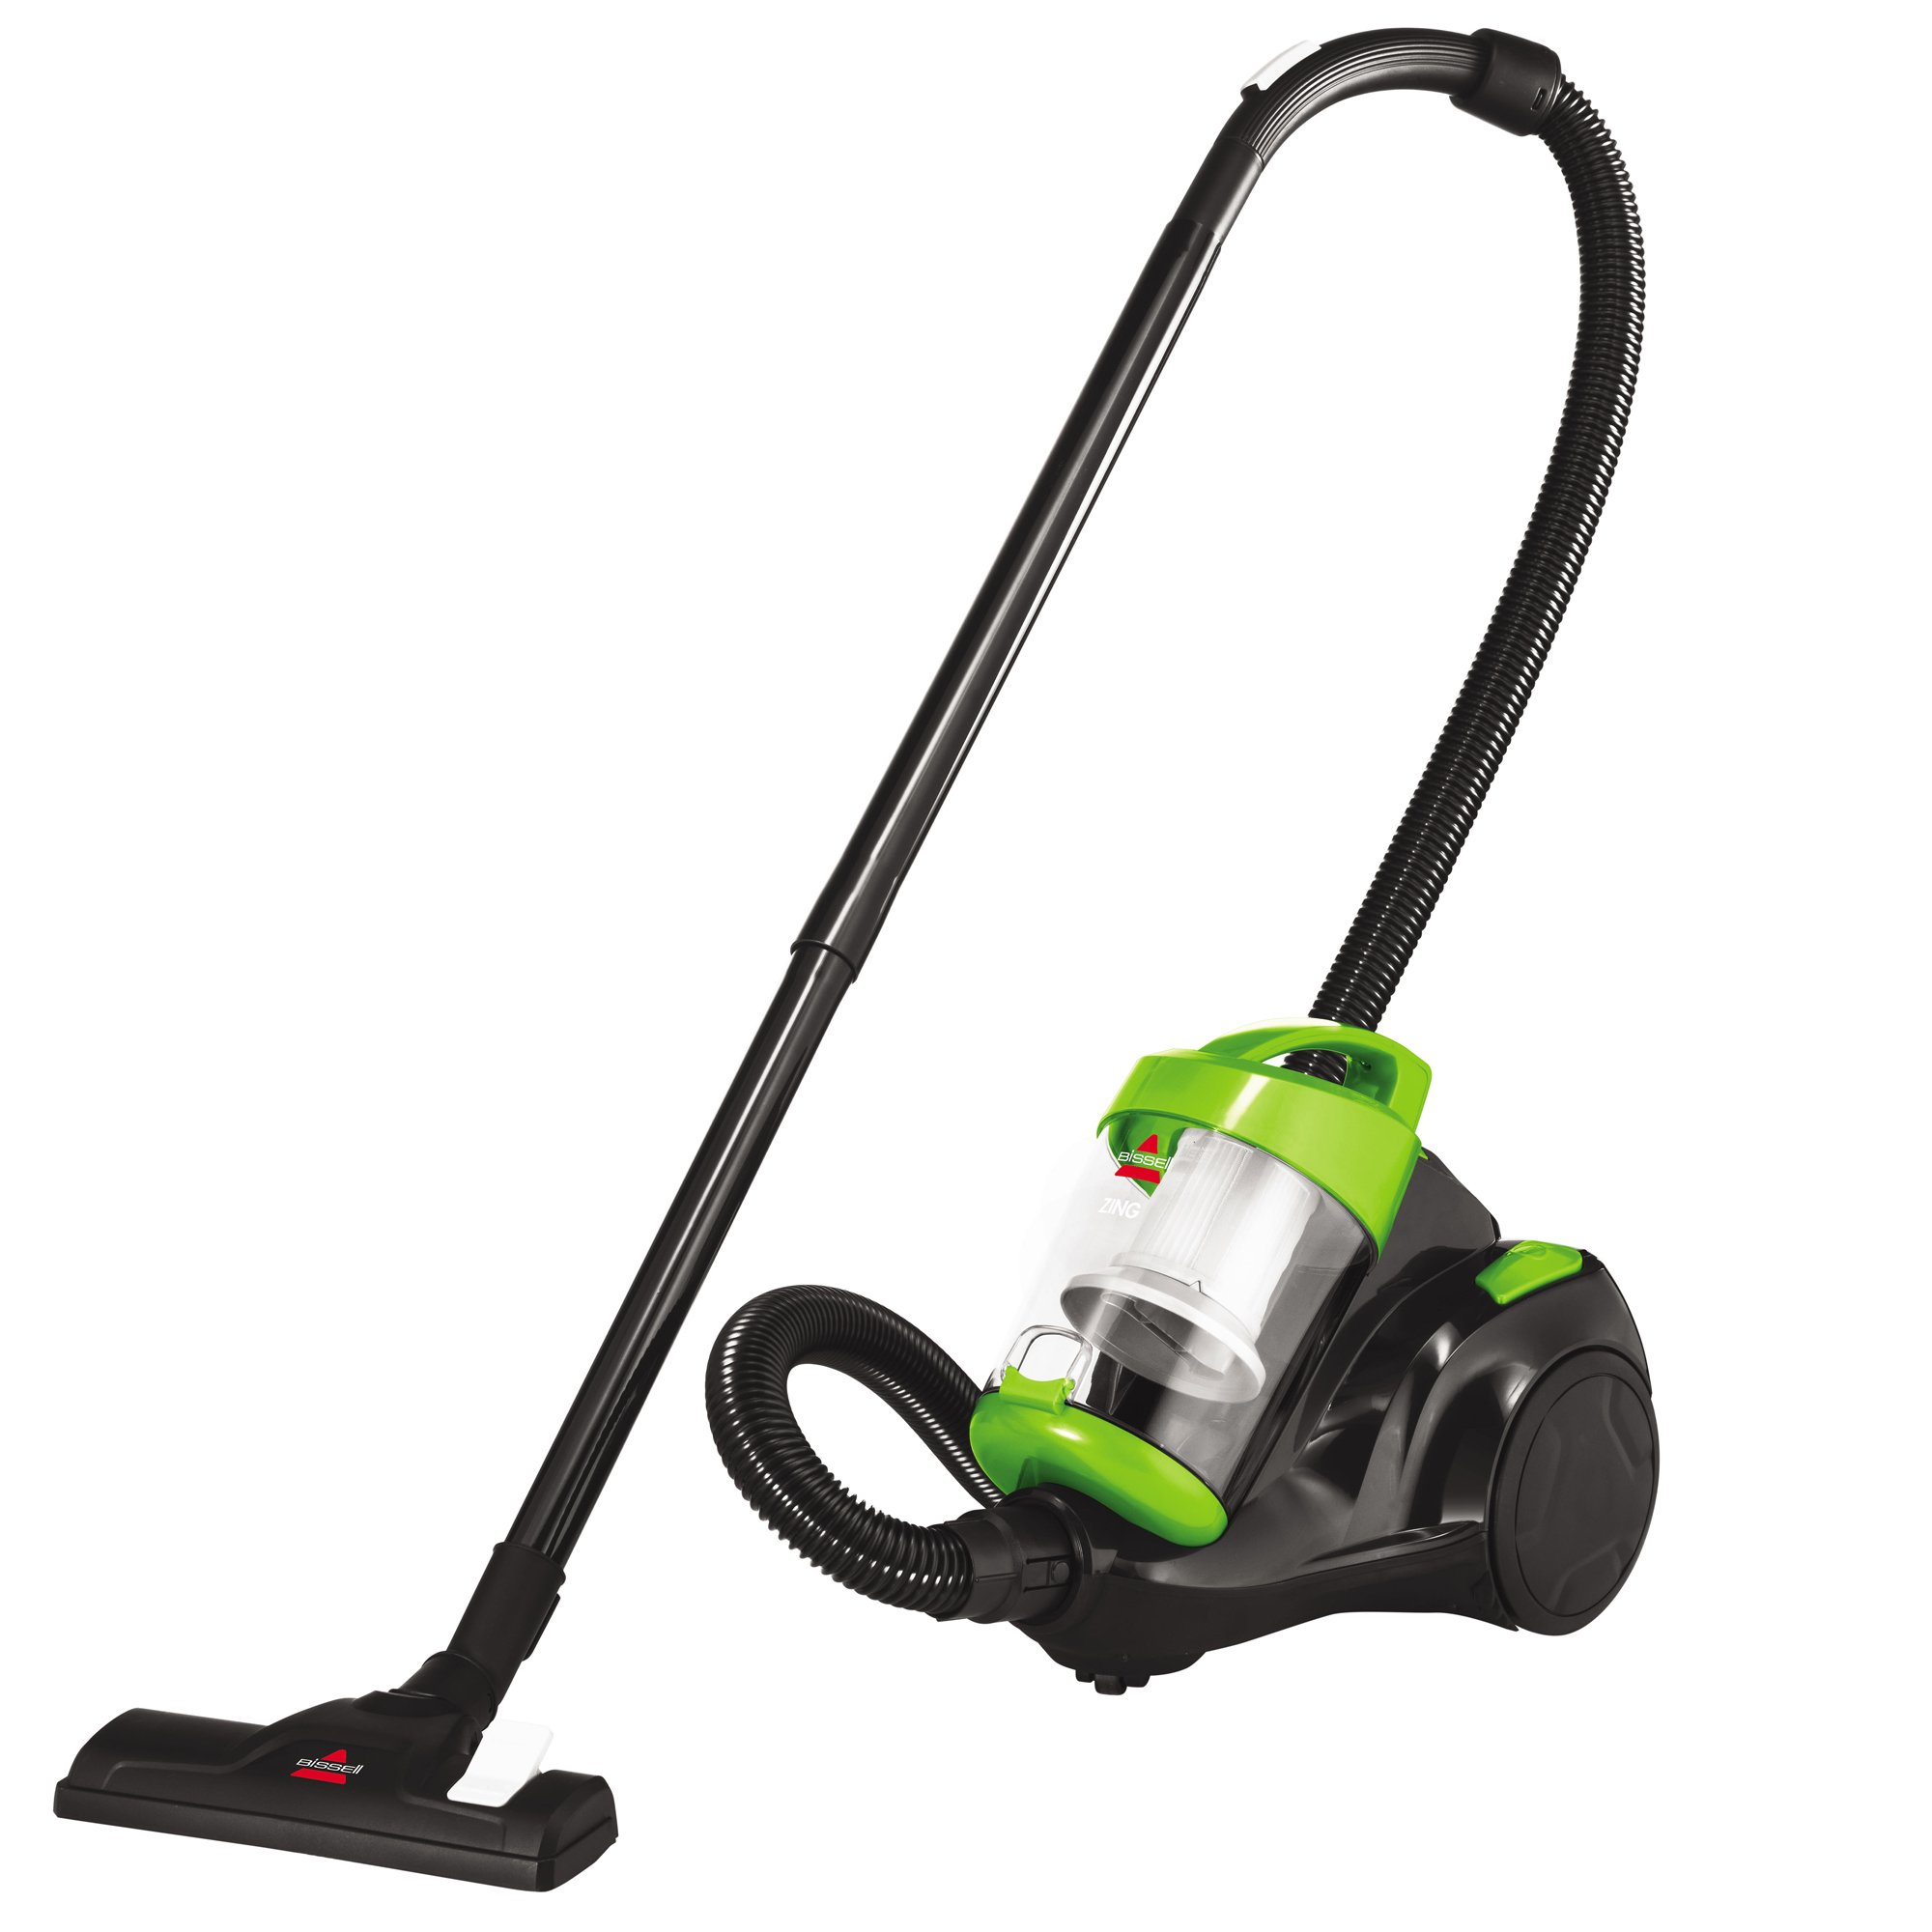 Bissell Zing Canister Bagless Vacuum, 2156A, Green Bagless